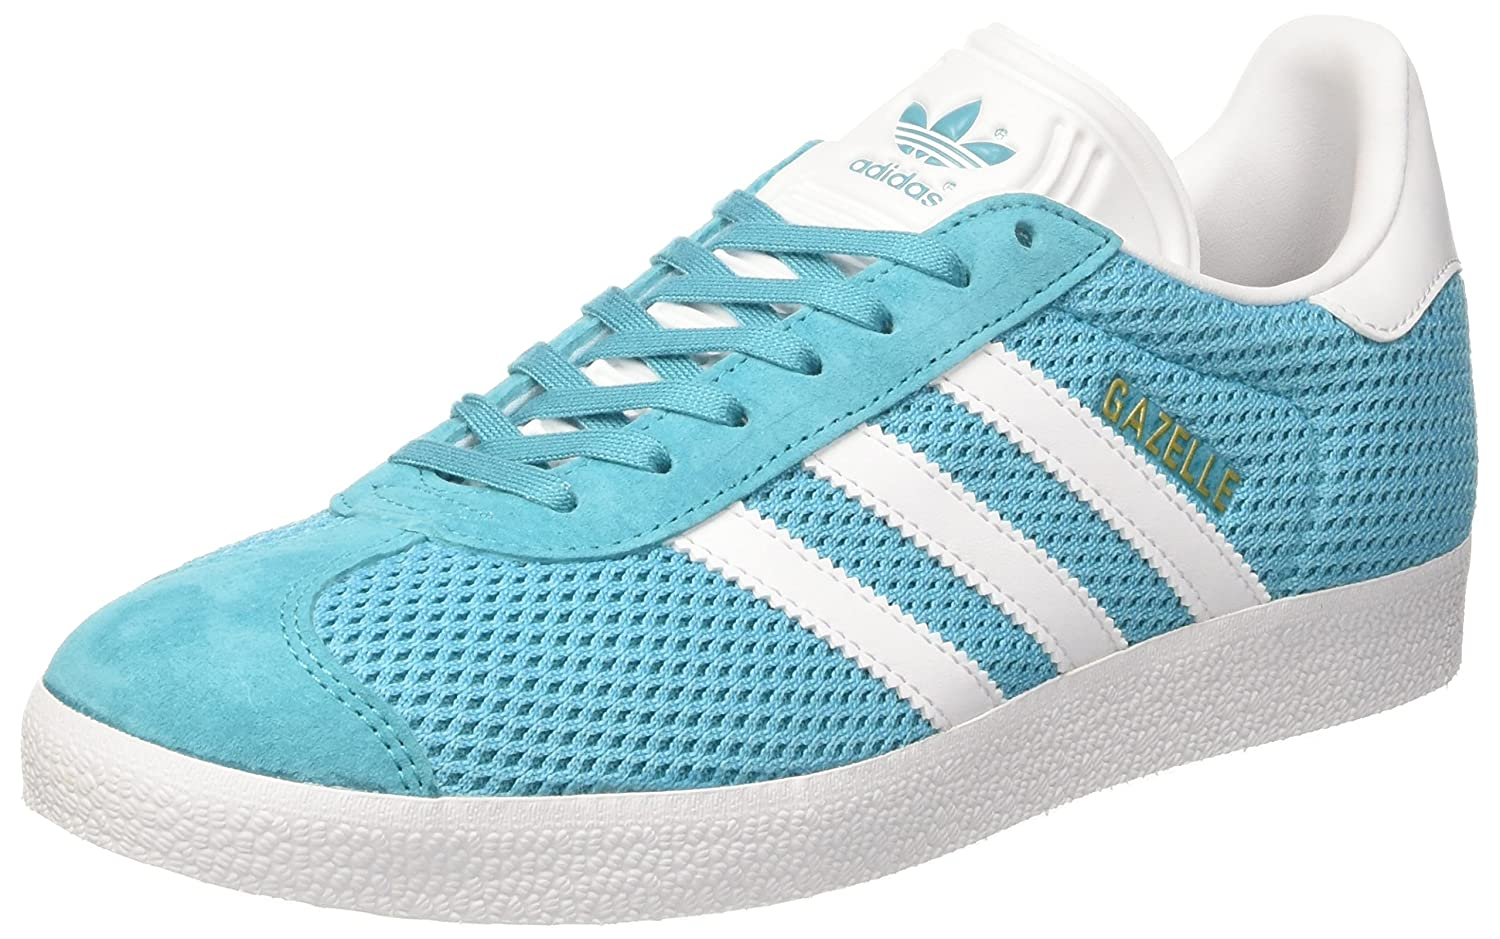 Adidas Originals Gazelle, Zapatillas de Deporte Unisex Adulto 46 2/3 EU|Varios Colores (Energy Blue/Footwear White/Energy Blue)